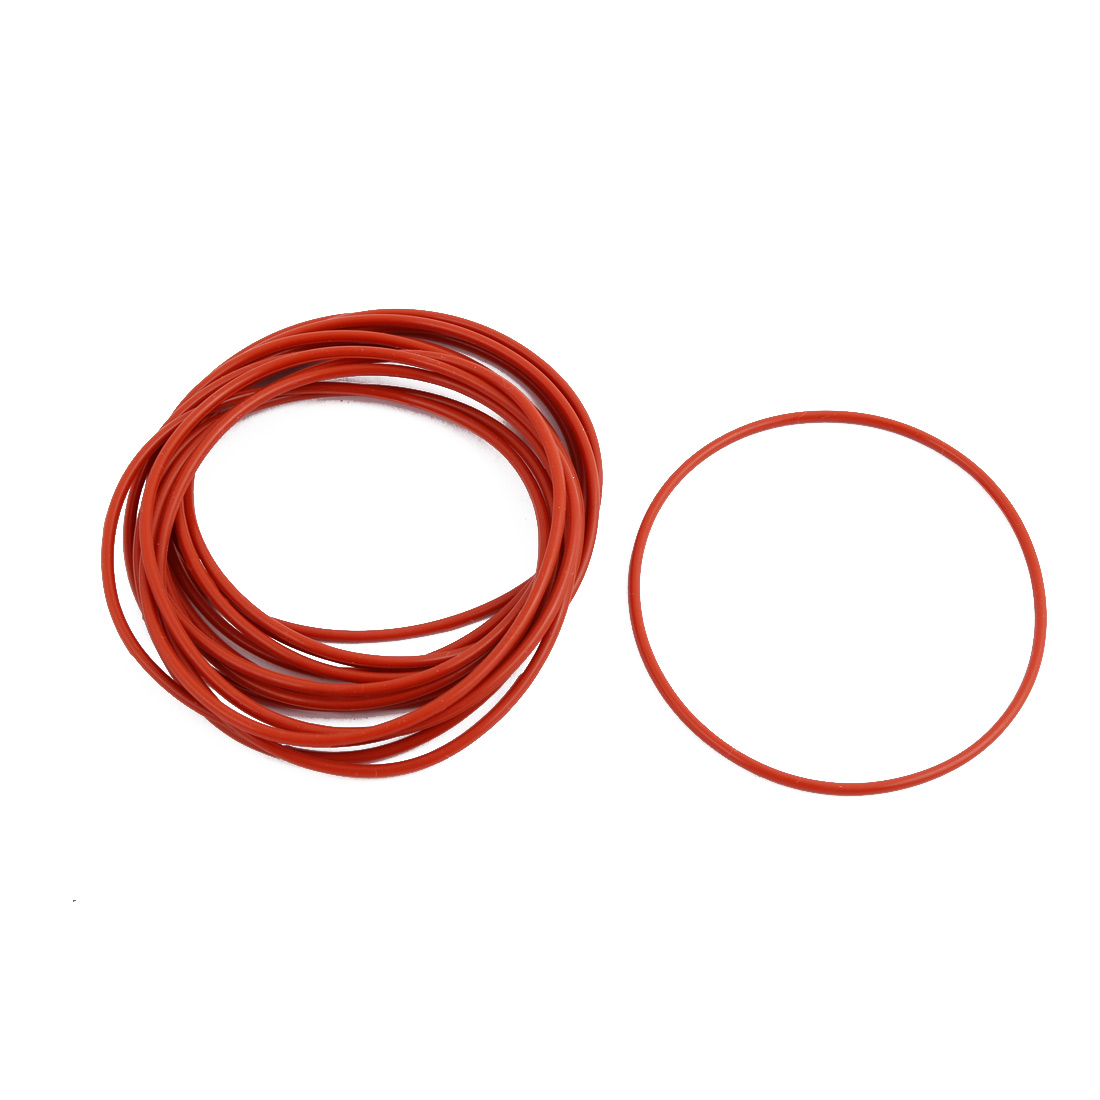 15pcs Red Round Nitrile Butadiene Rubber NBR O-Ring 70mm OD 1.9mm Width